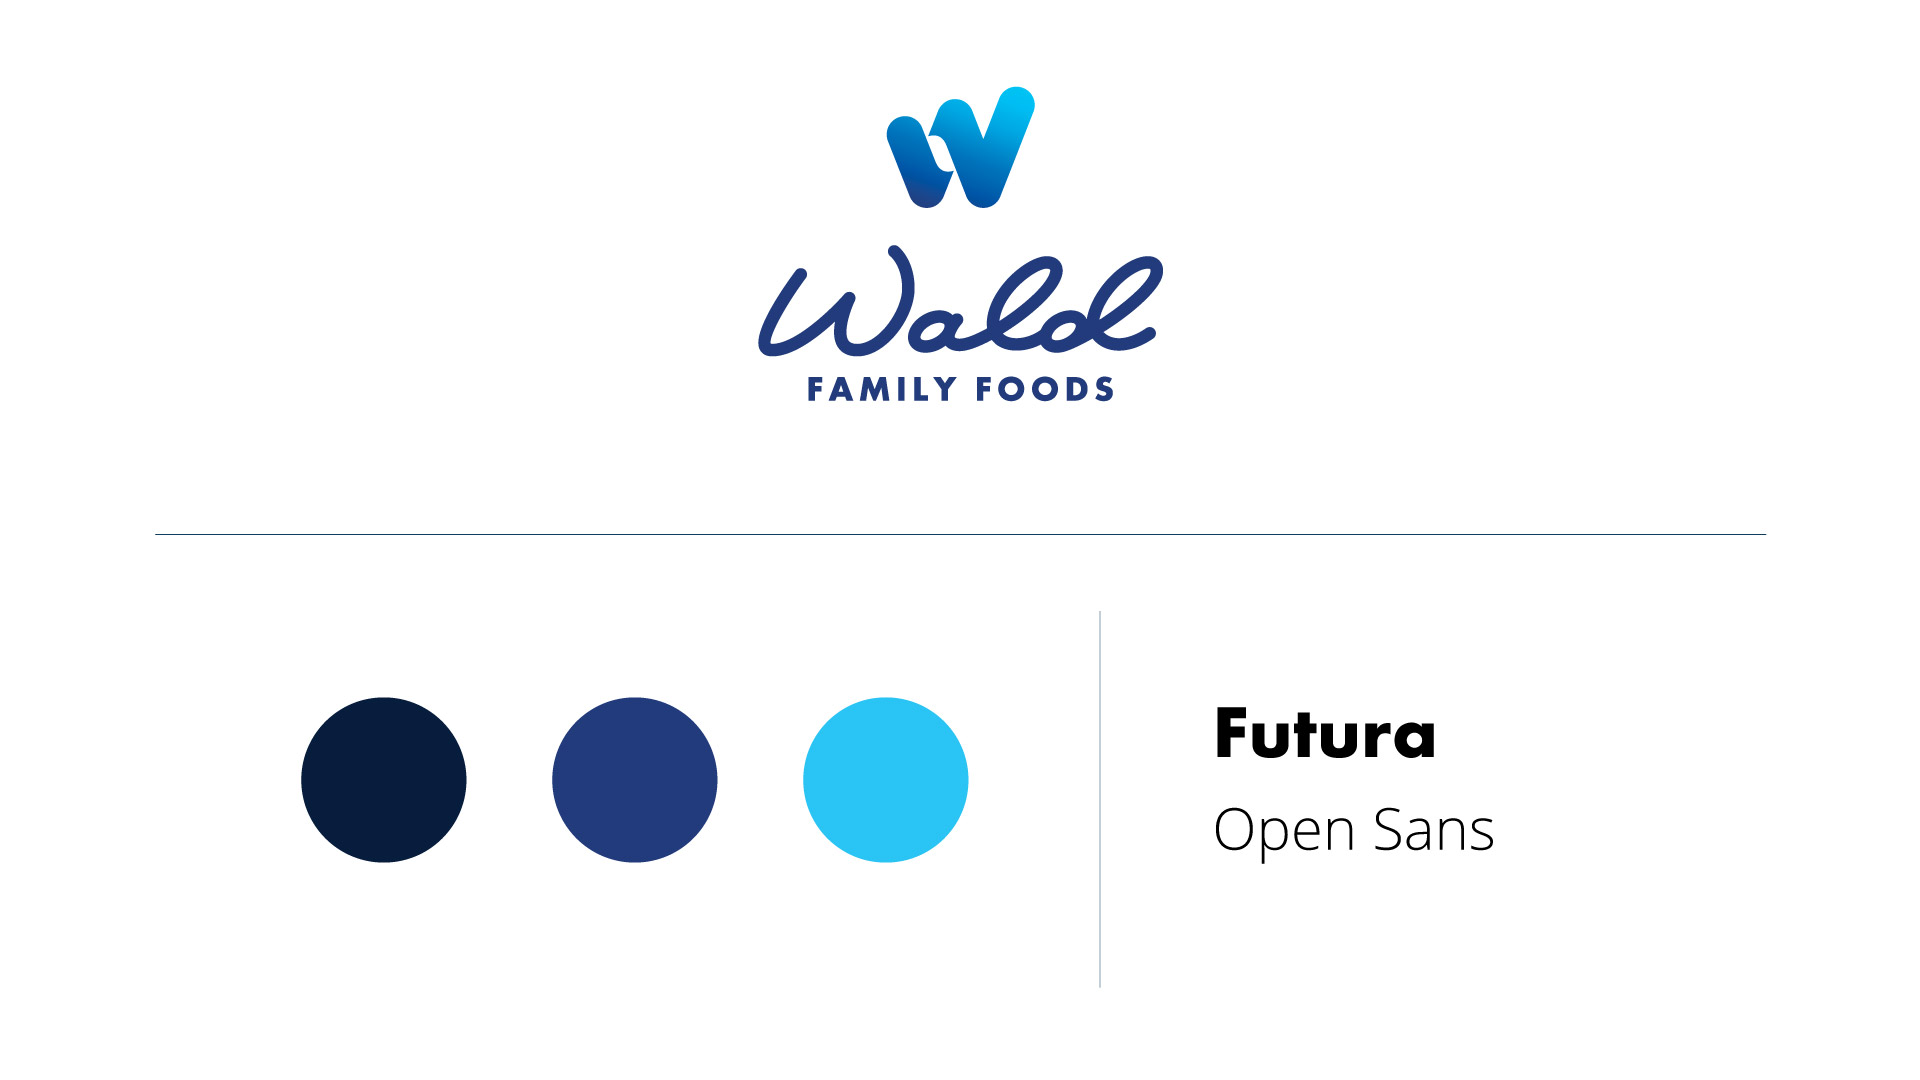 Wald Family Foods business card